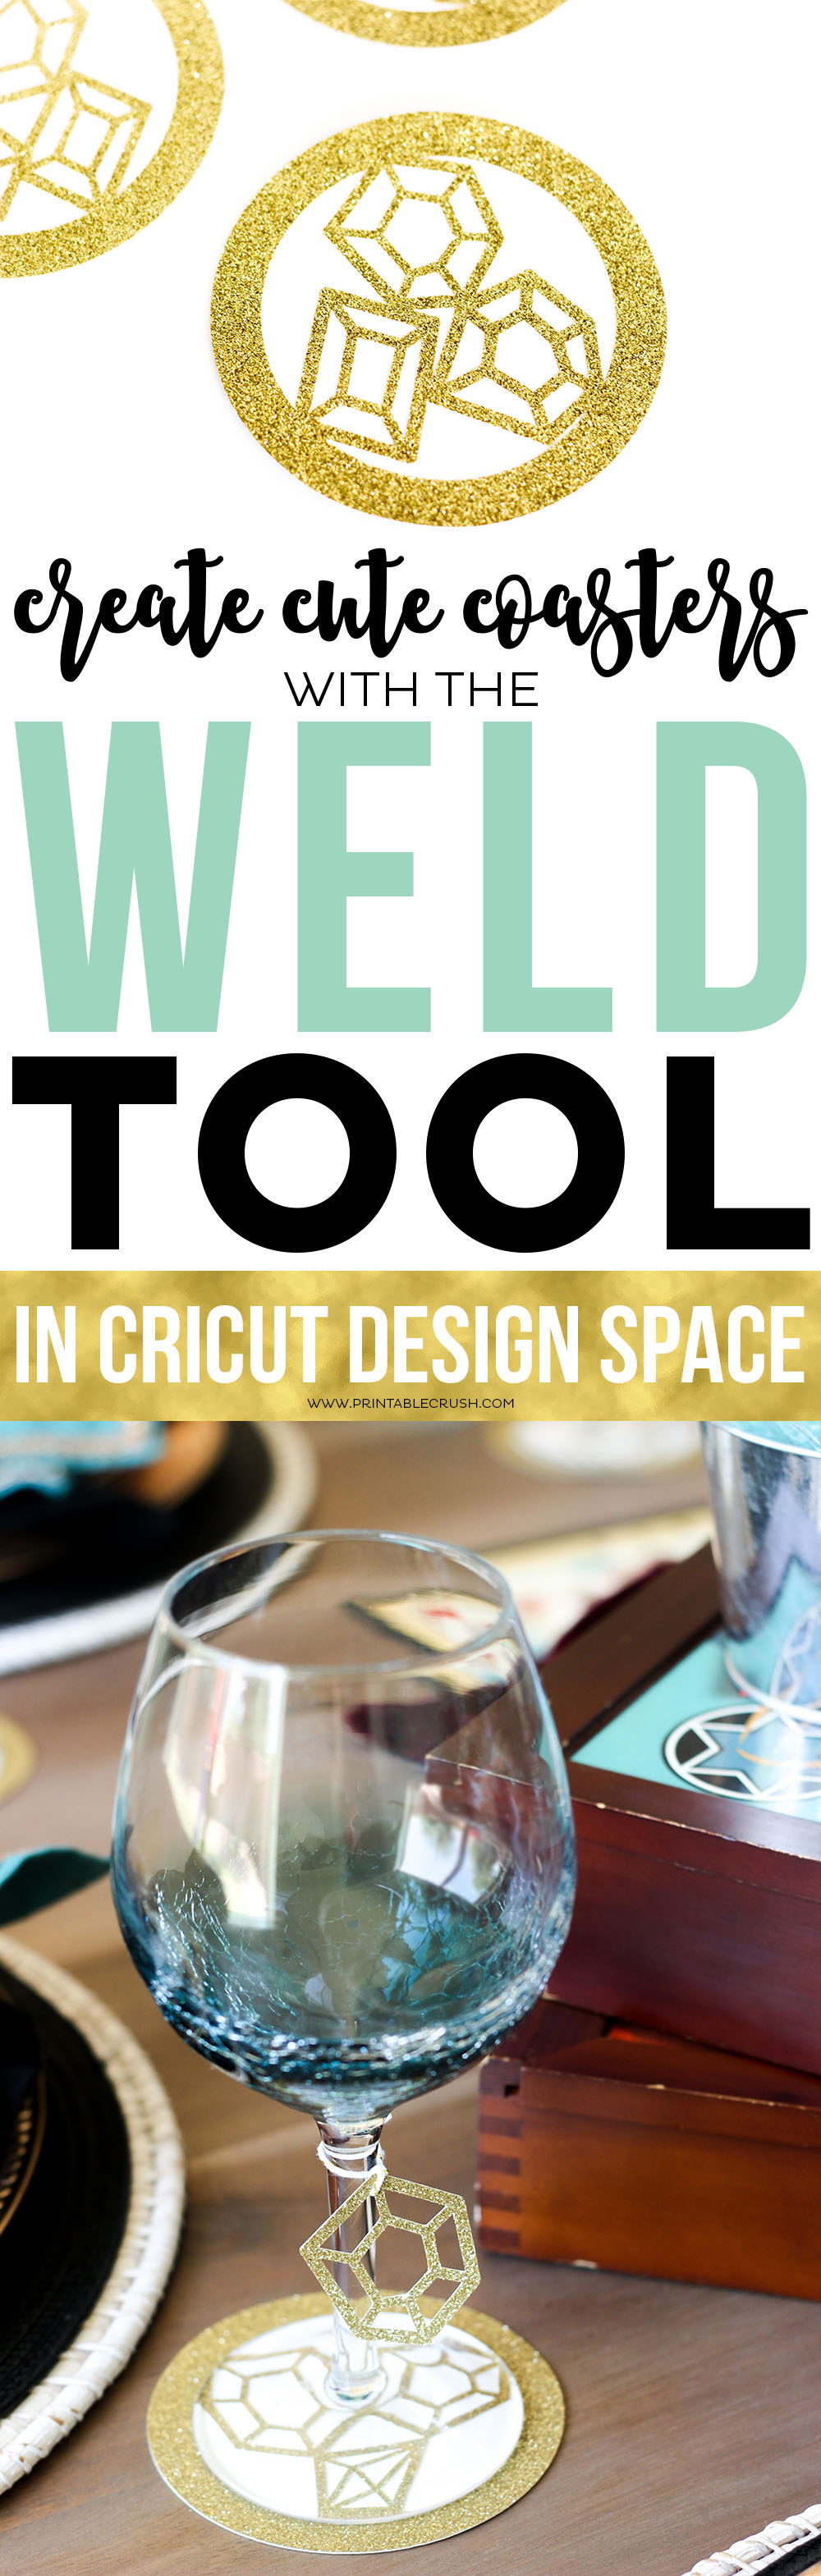 Learn to use the Weld Tool in Cricut Design Space and you can make some cute coasters and other amazing crafts!